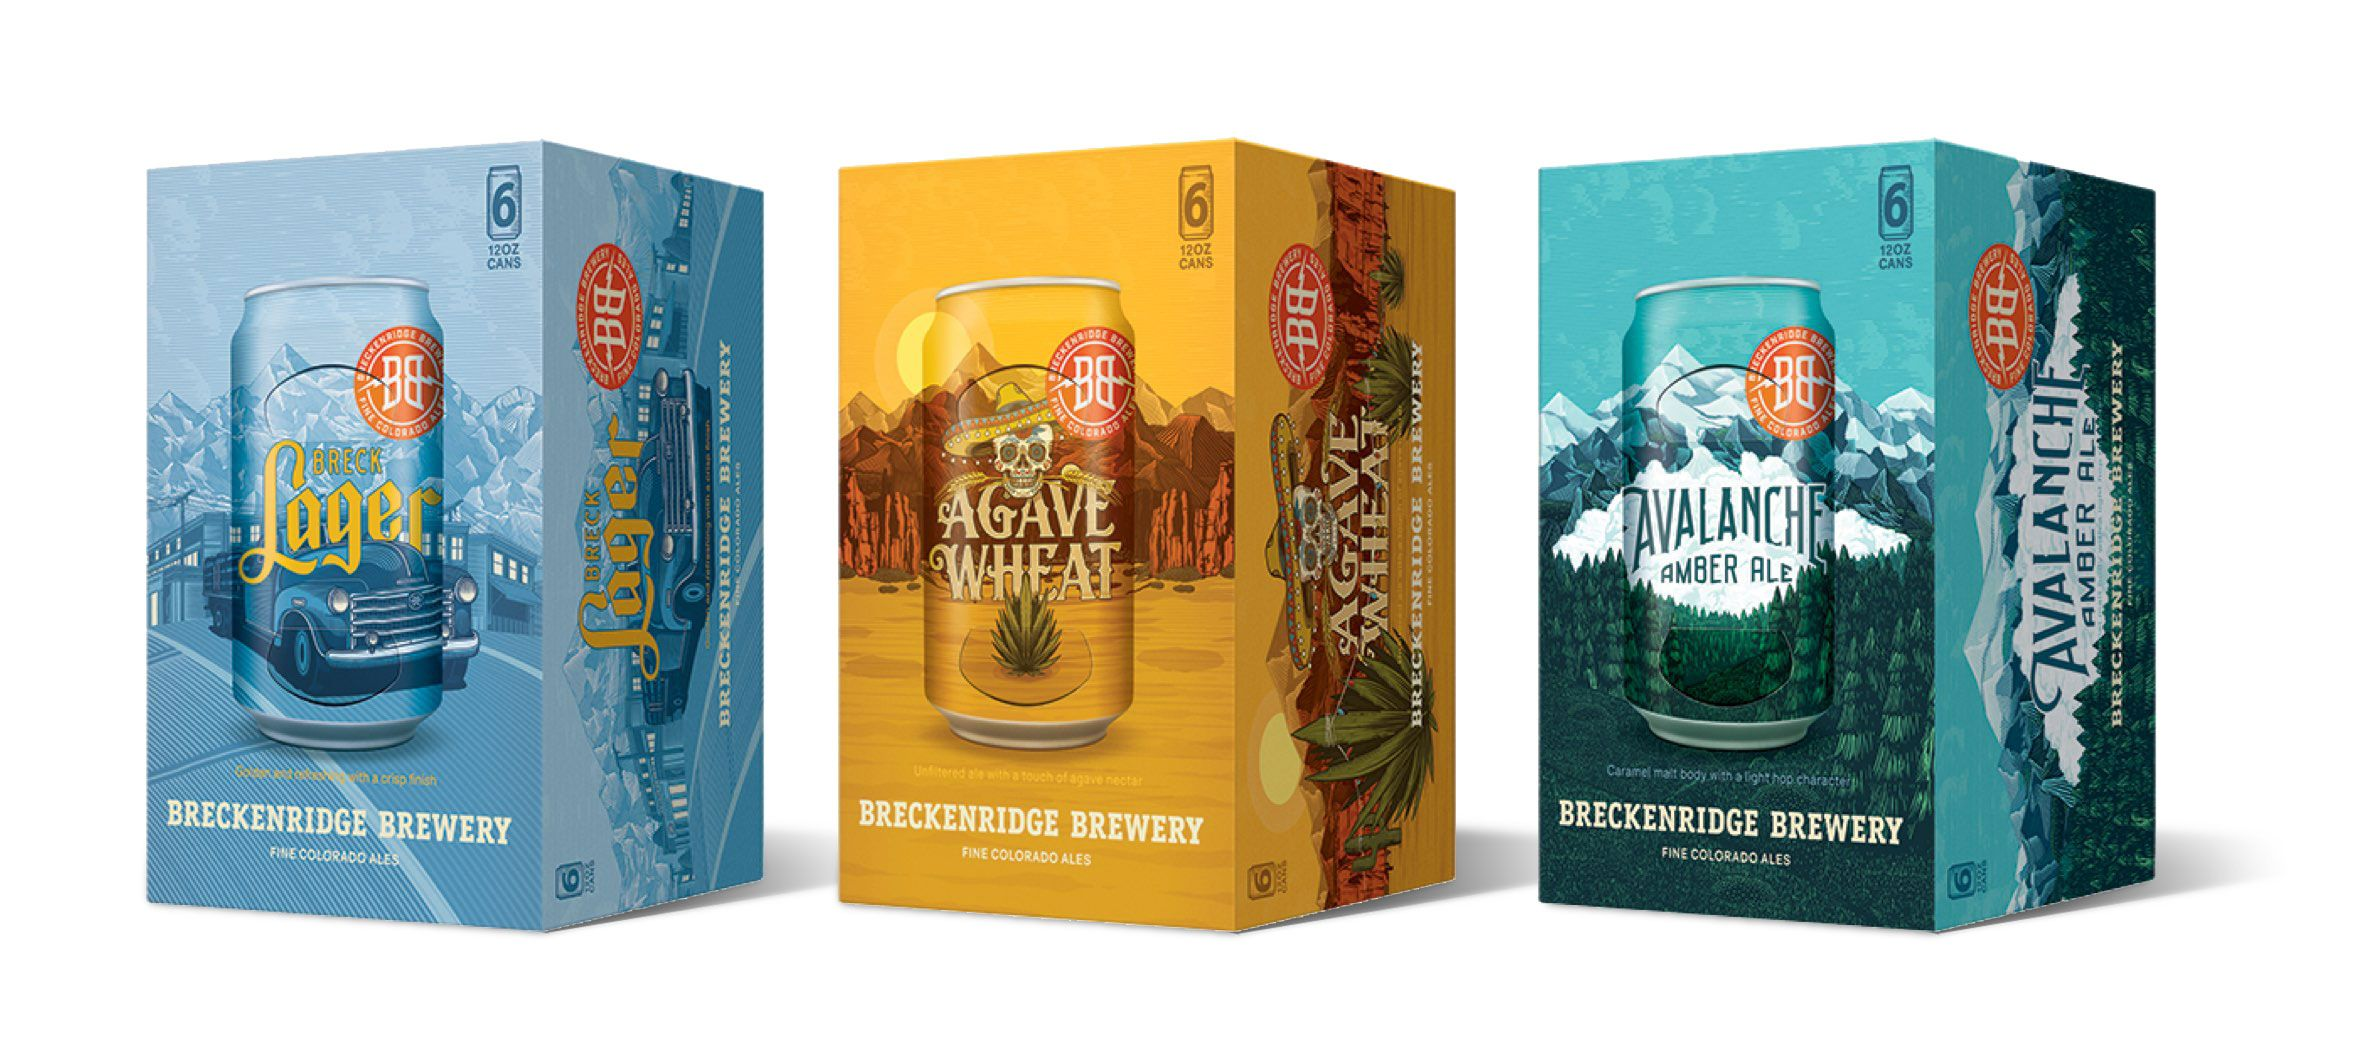 Packaging spread for Breckenridge Brewery cases